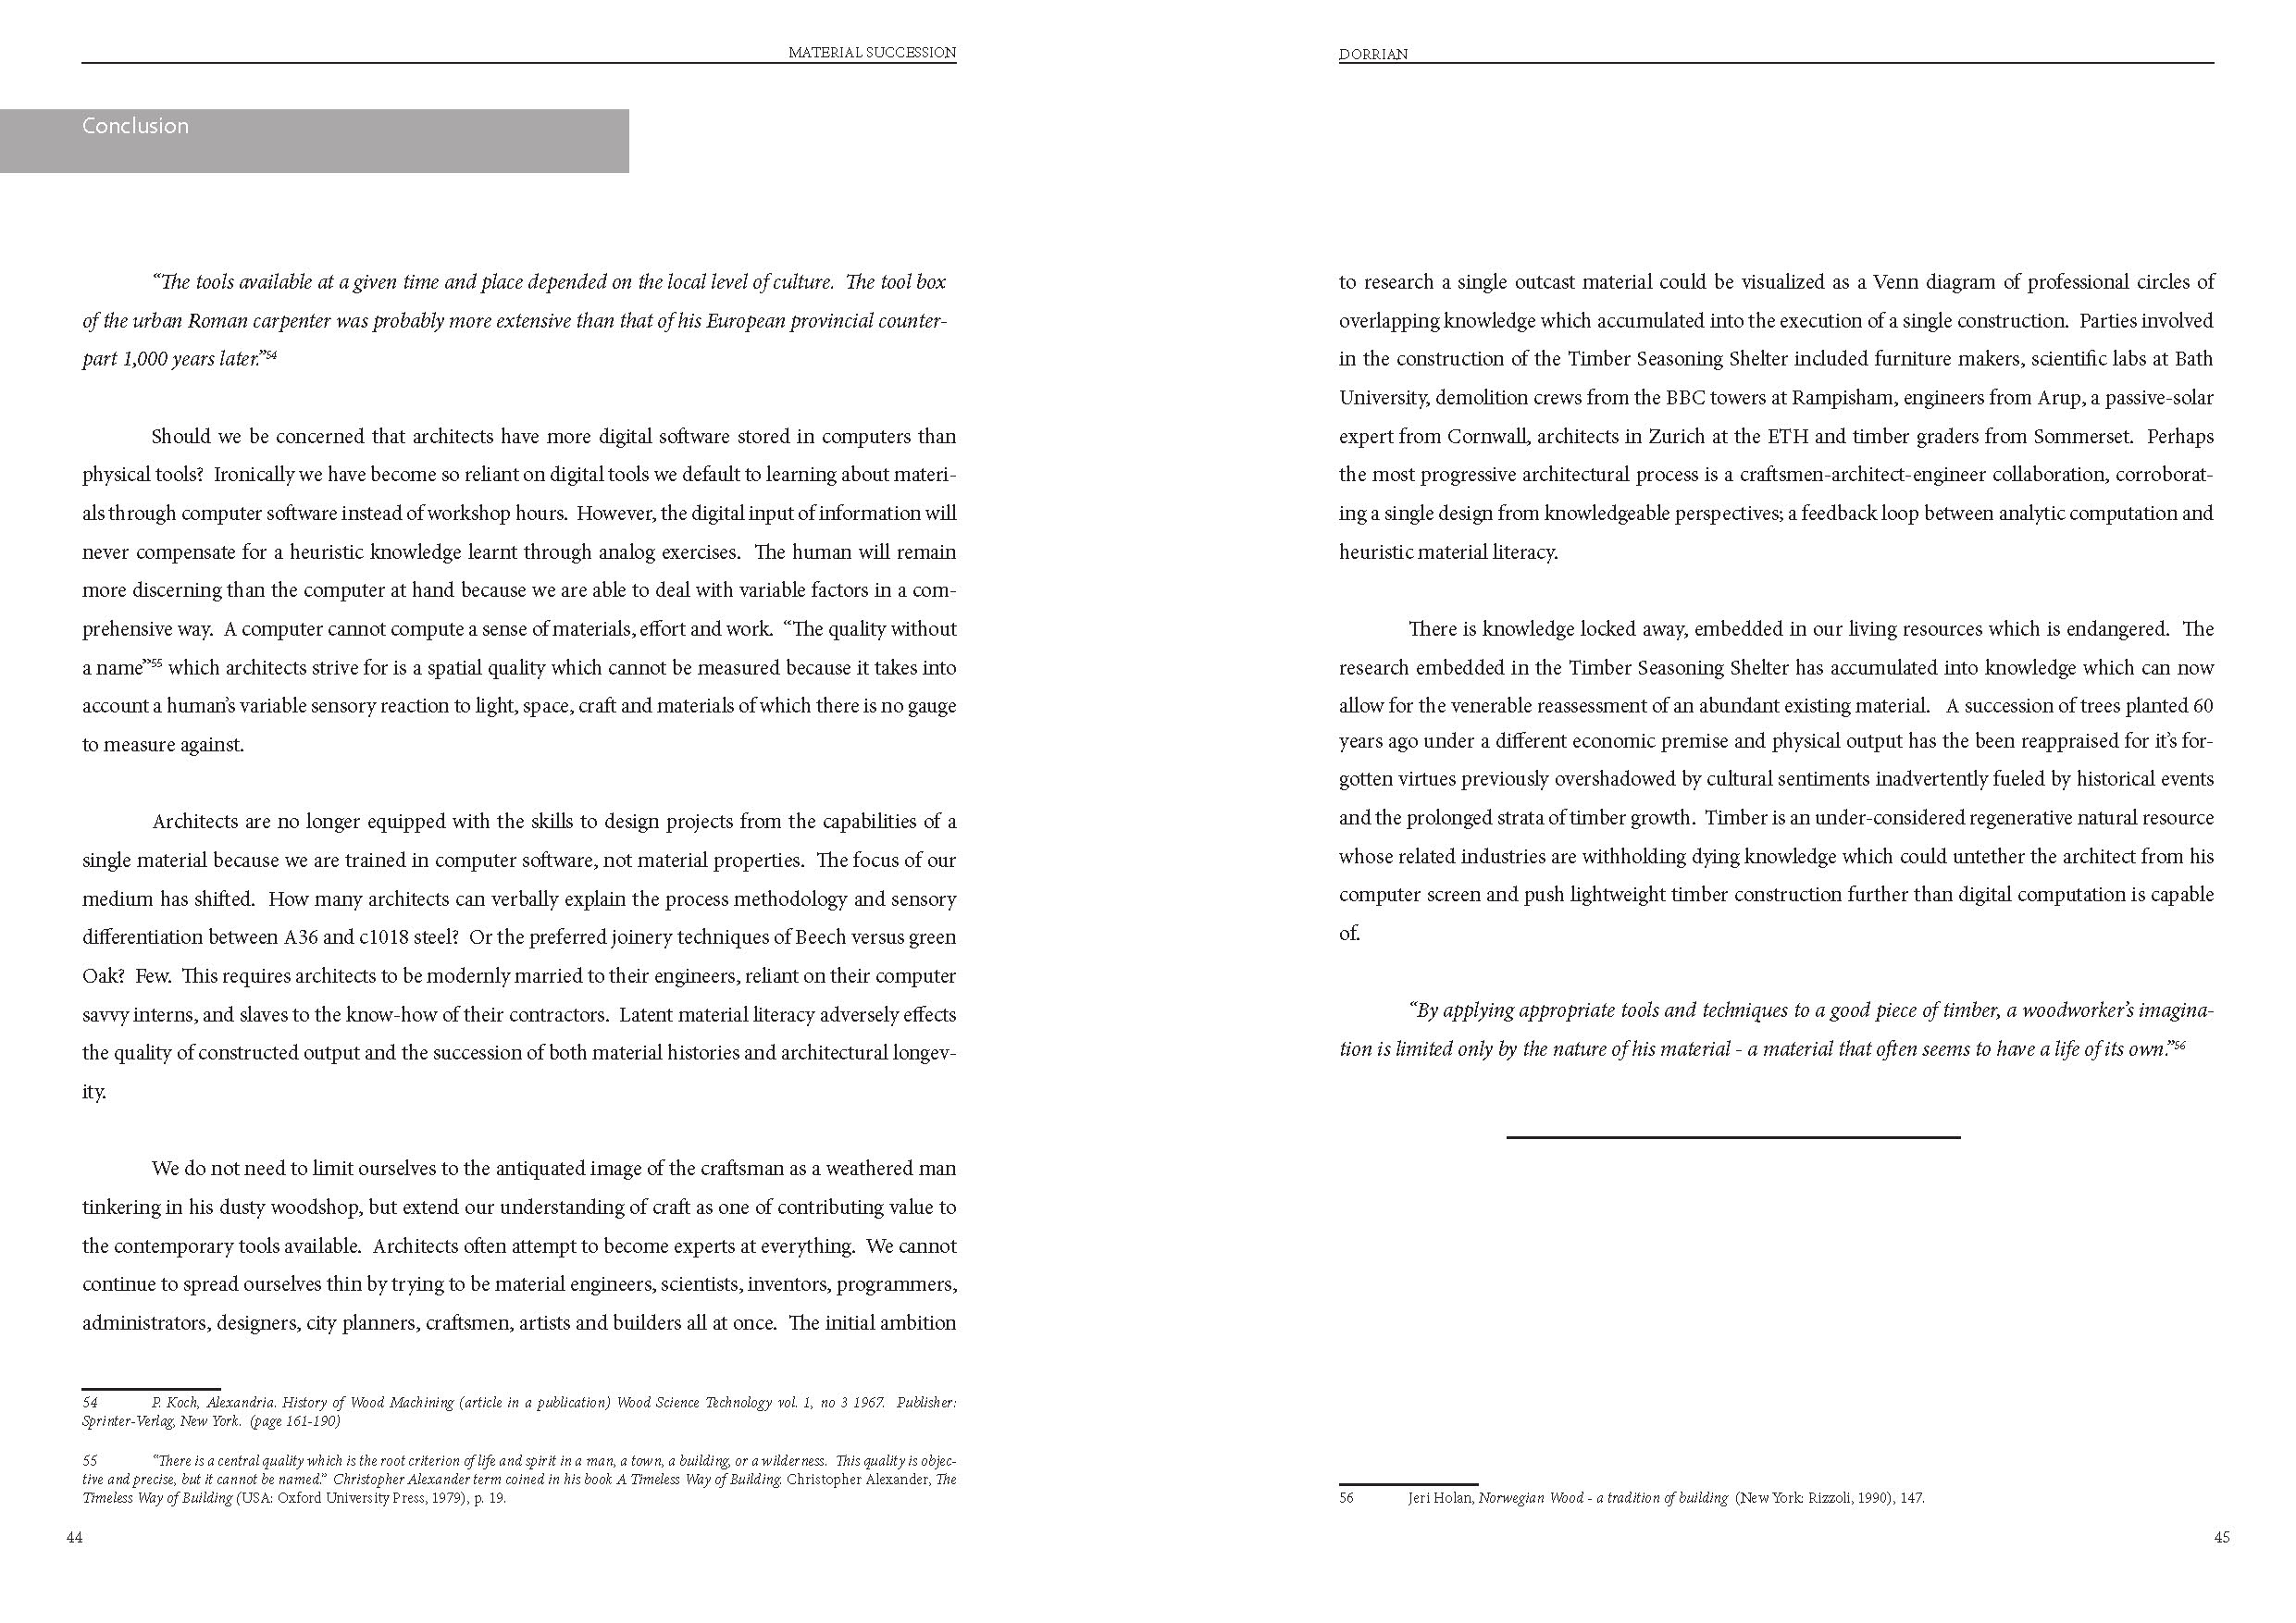 130131_Material SuccessionFORSUBMITTAL_Page_27.jpg